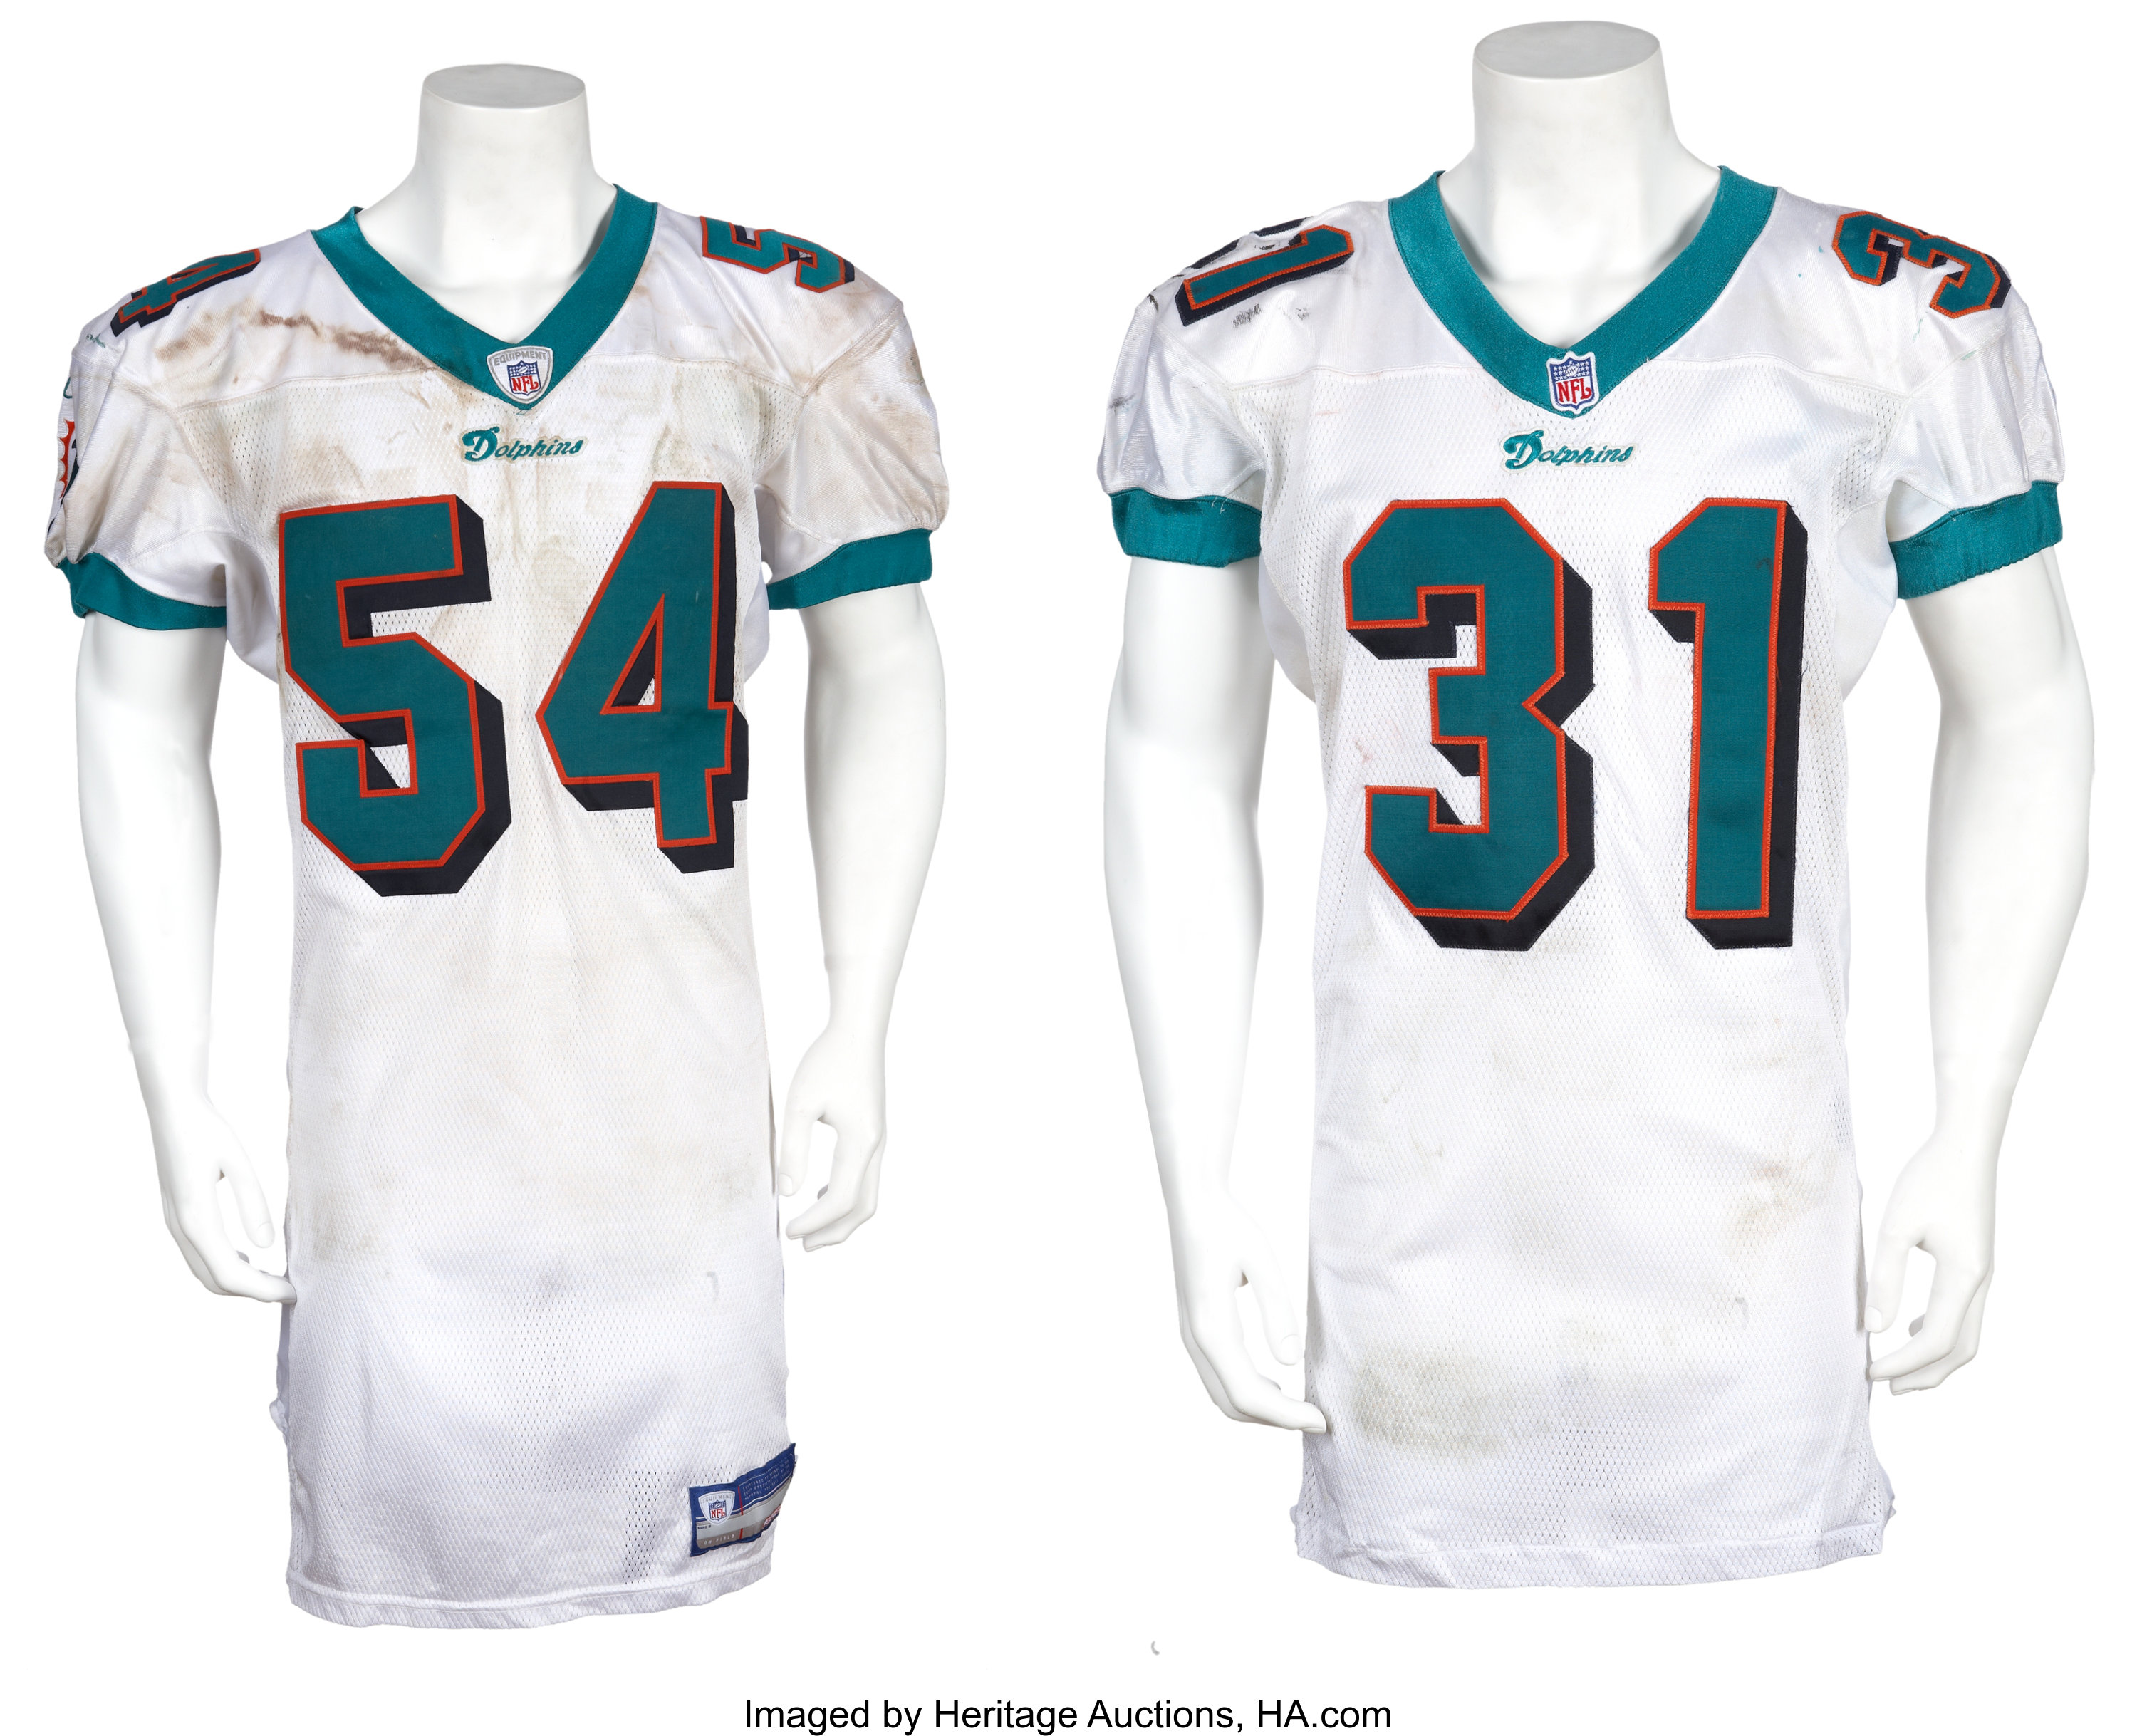 2001-02 Brock Marion and Zach Thomas Game Worn Jerseys -Unwashed w ...